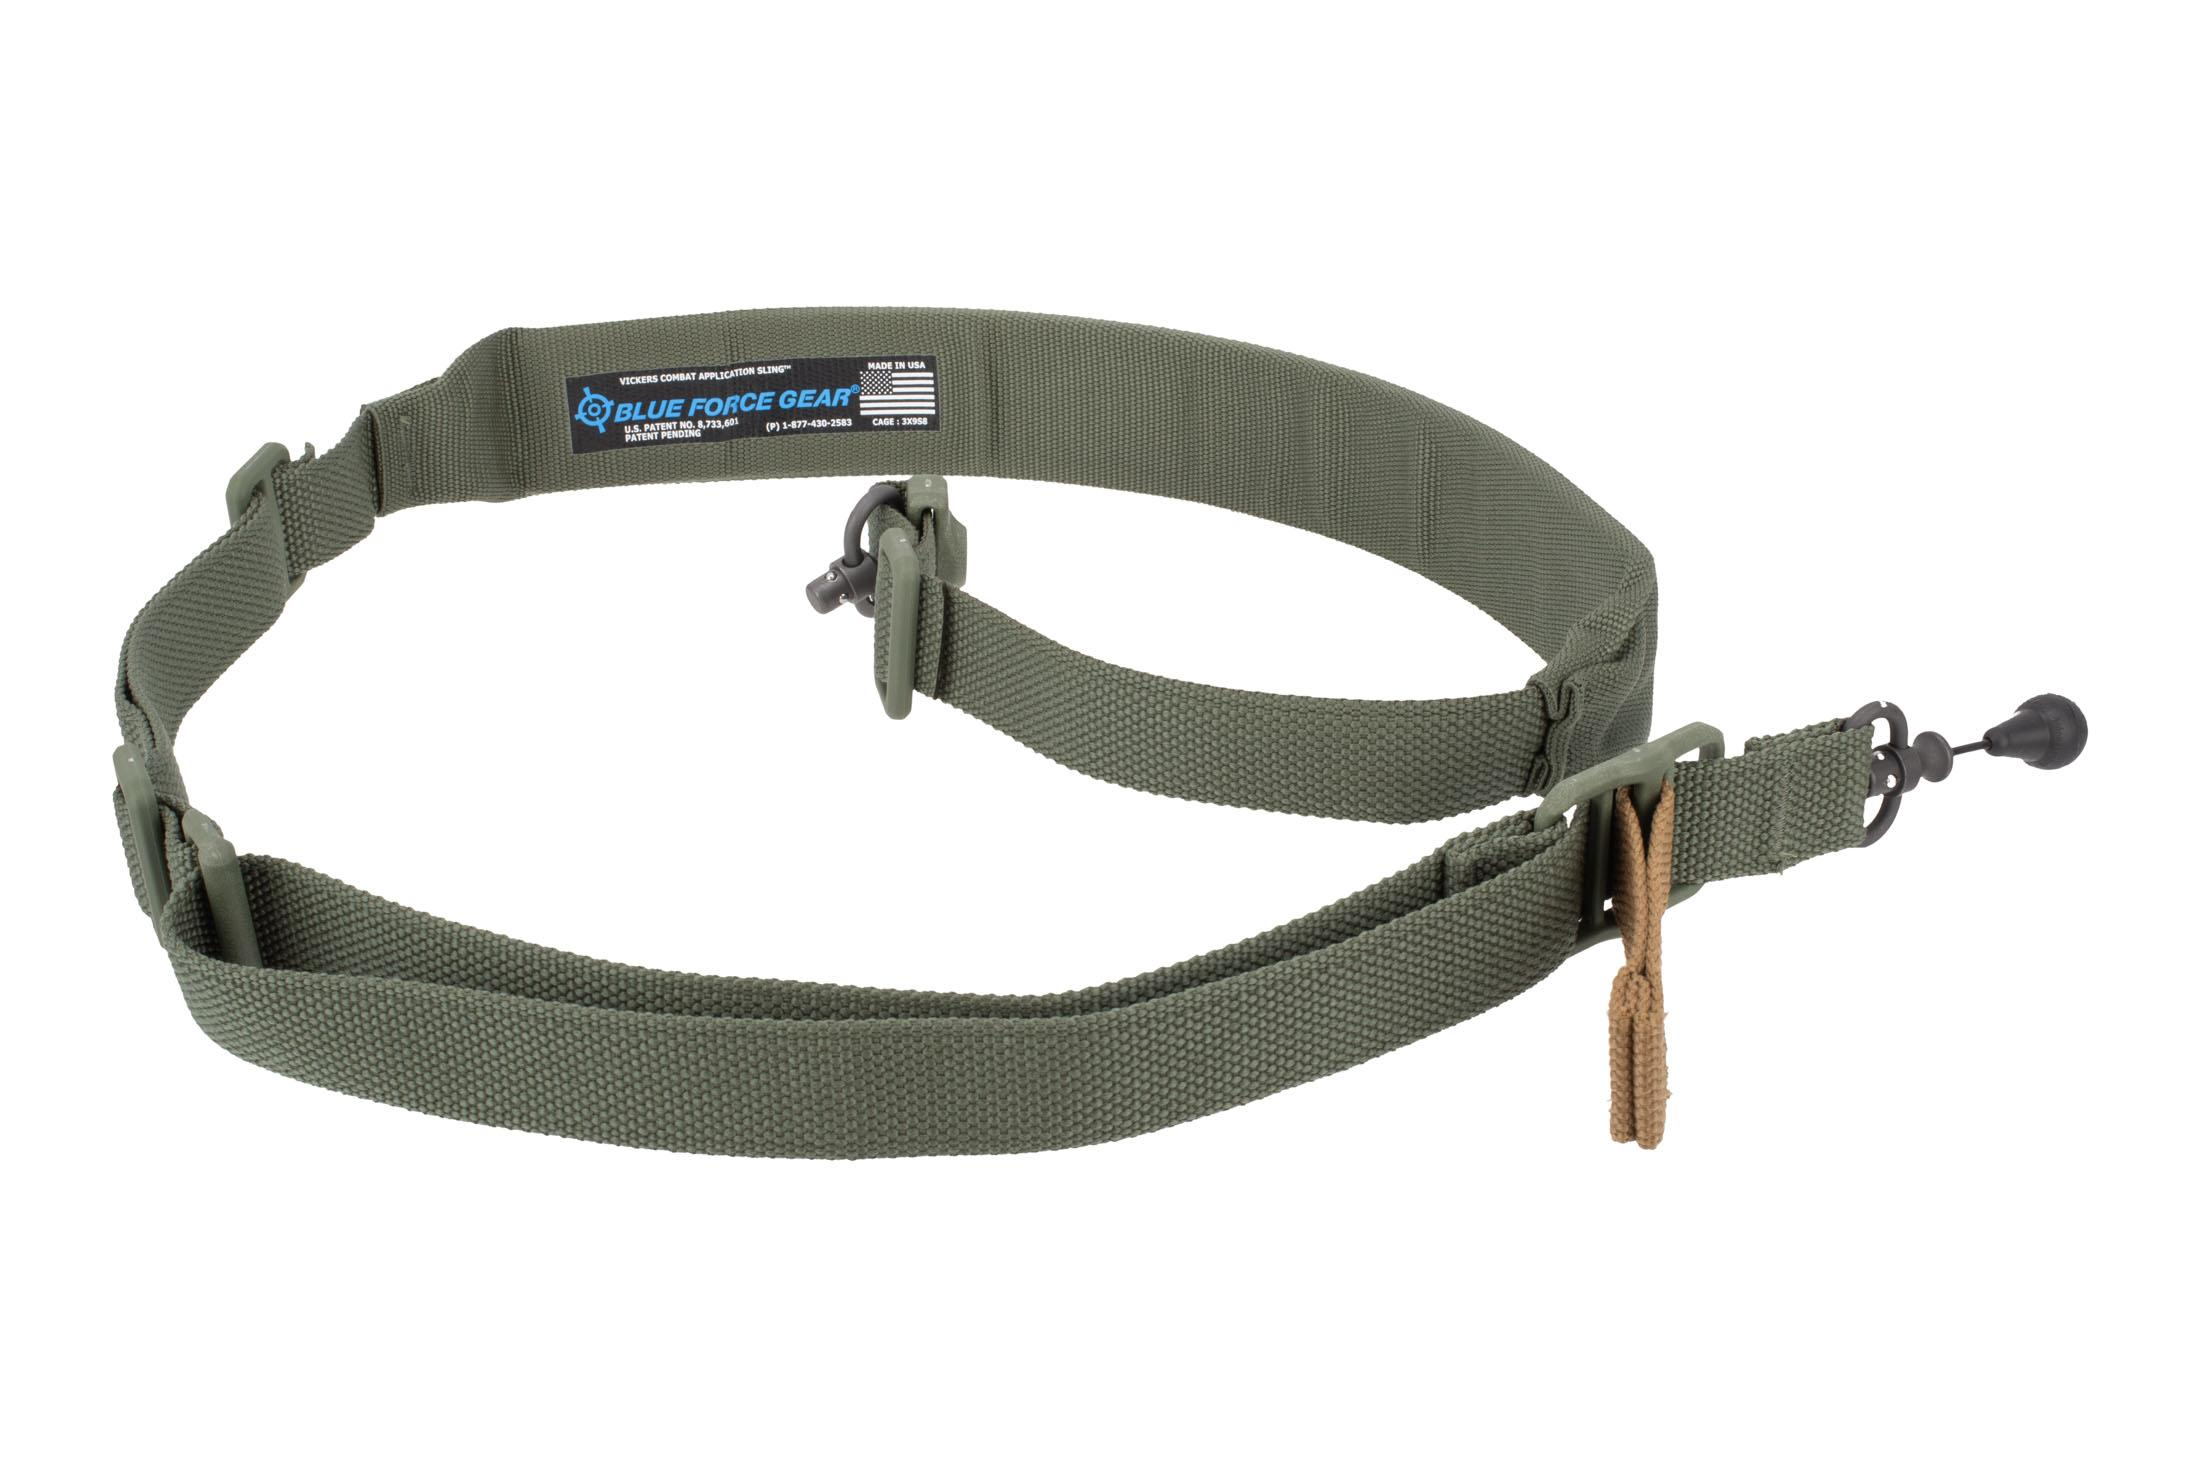 Blue Force Gear Vickers 221 Convertible Padded 2.00 Rifle Sling RED Swivels - OD Green